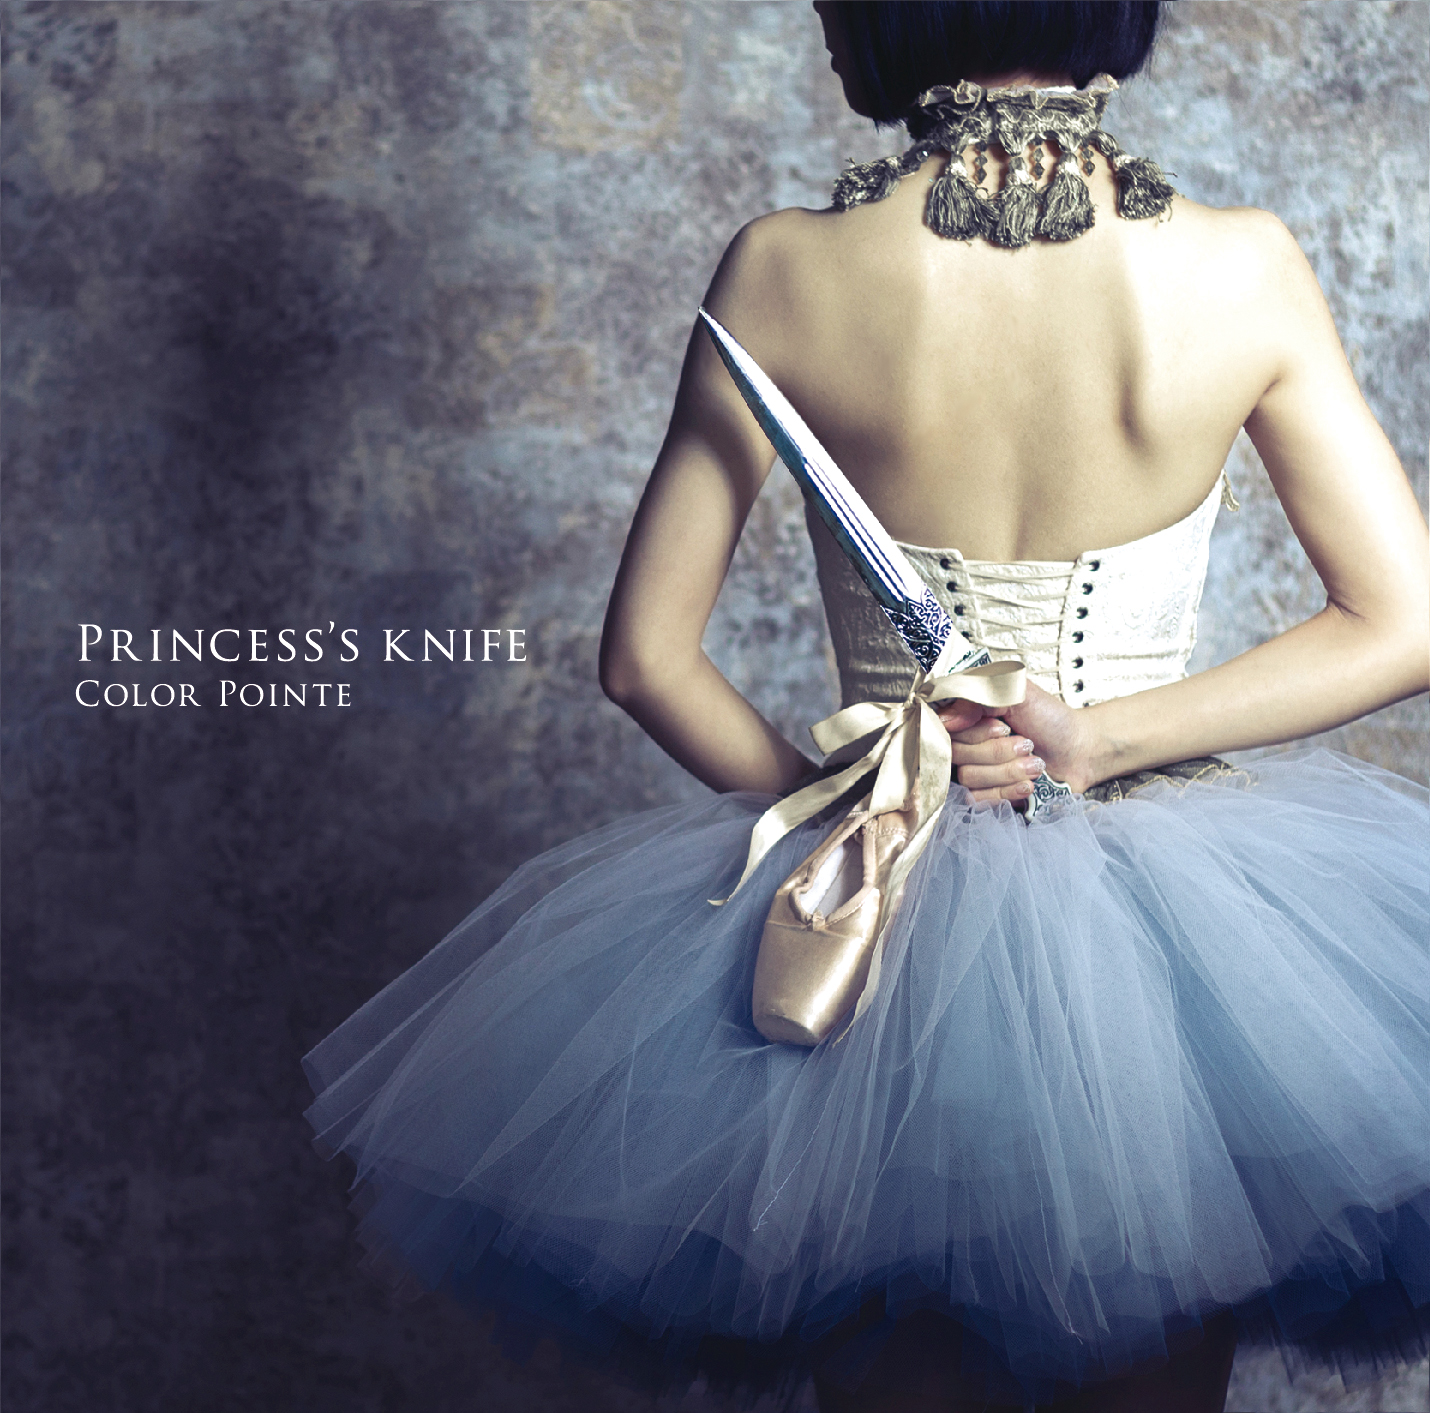 20170915.0452.2 Colorpointe - Princess's Knife cover.jpg